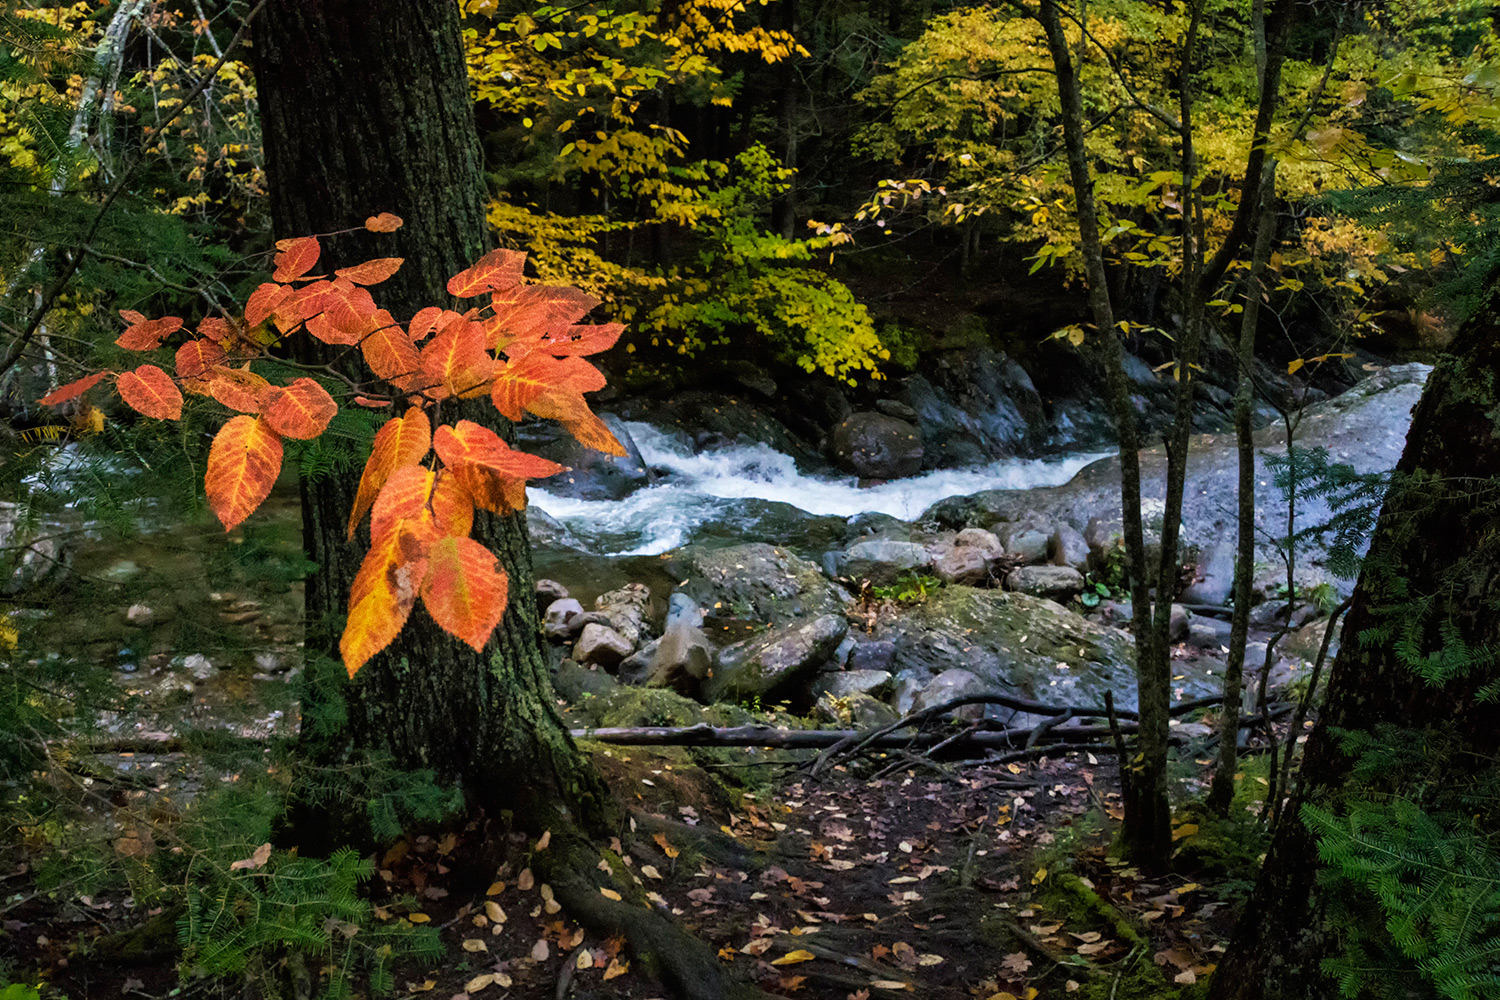 https://i2.wp.com/digital-photography-school.com/wp-content/uploads/2018/11/FallFoliage_FilterDPS1.jpg?resize=1500%2C1000&ssl=1